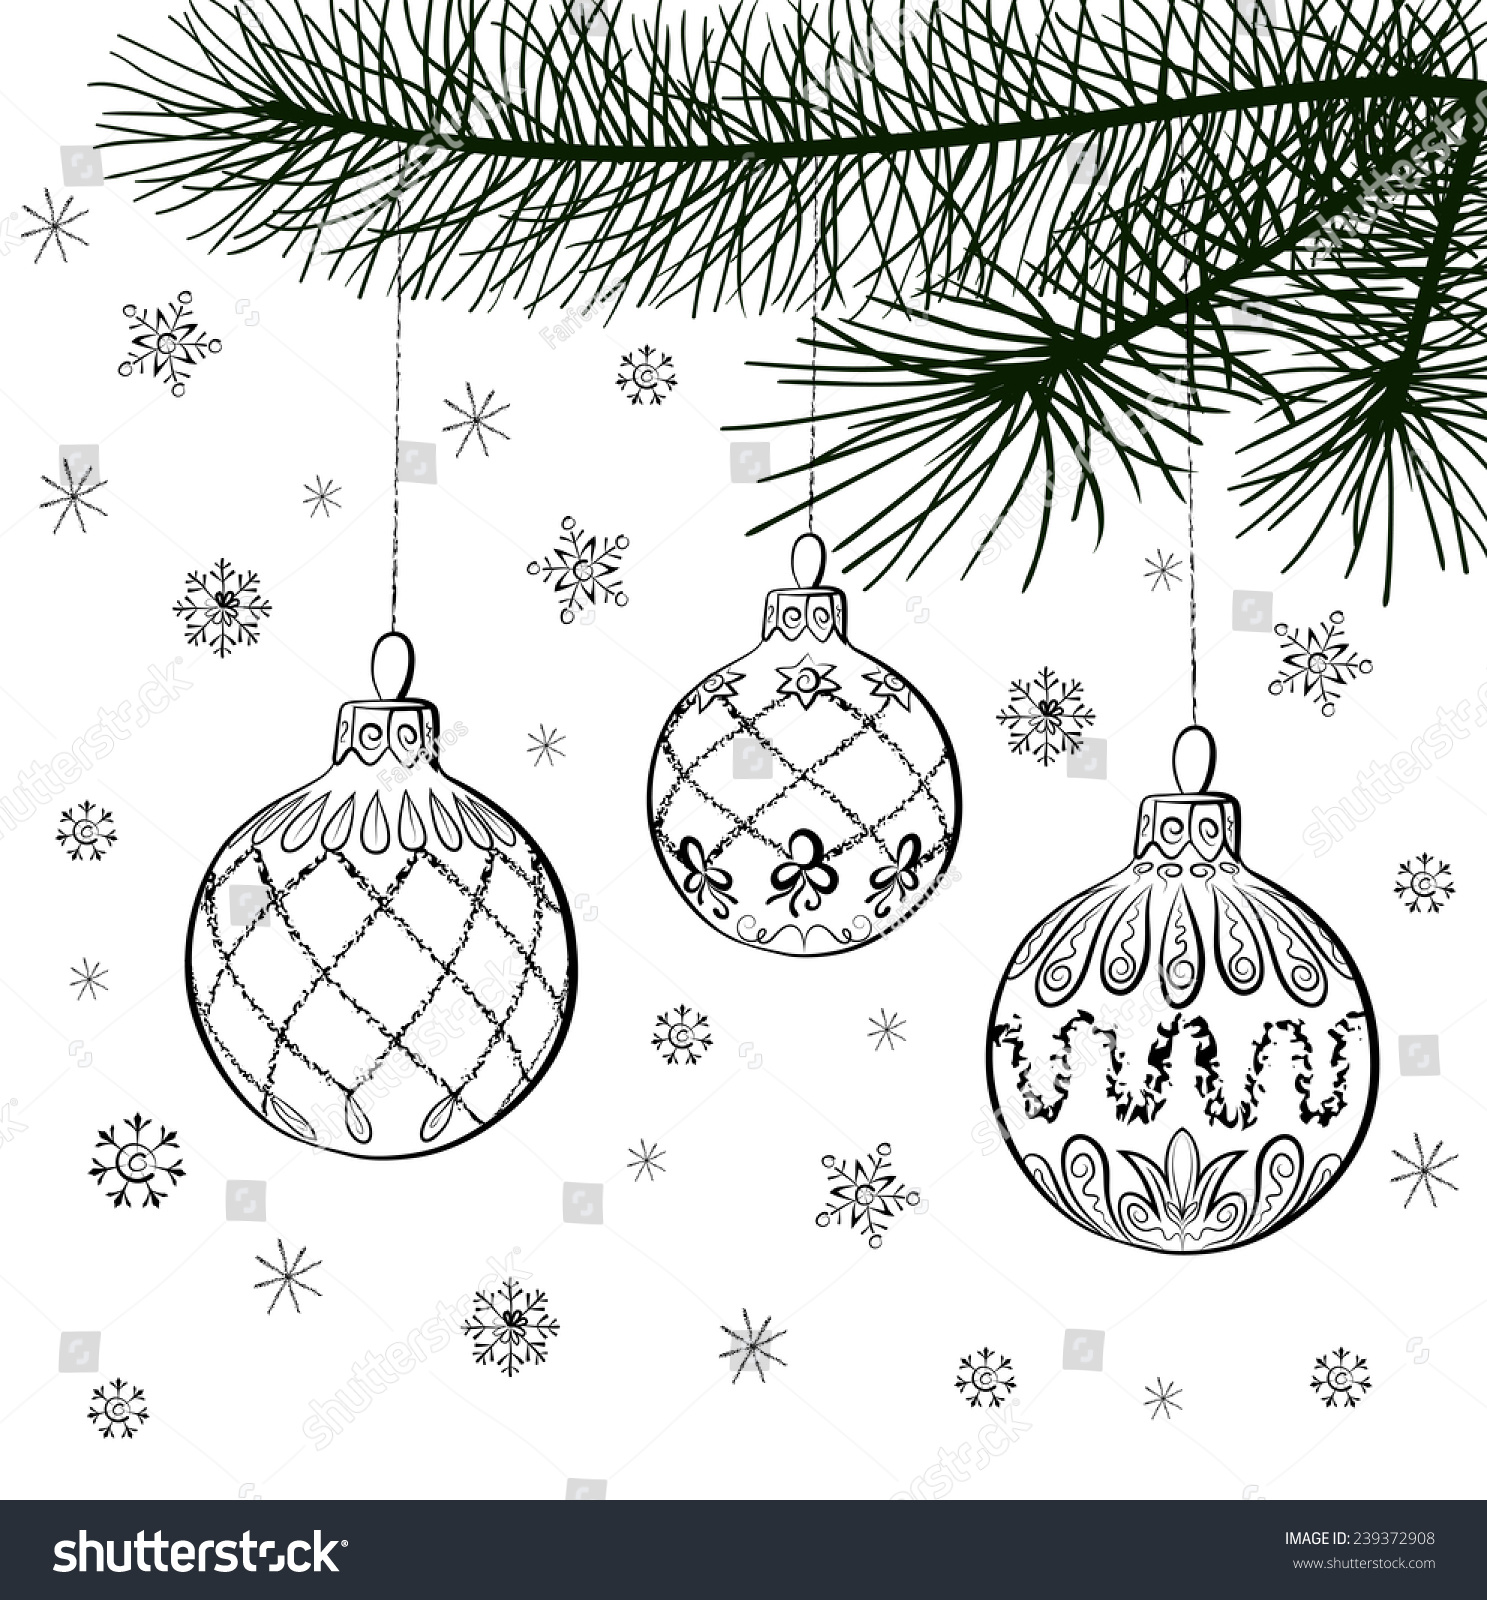 Drawings Of Christmas Decorations.Vector Sketch Of Three Christmas Balls Stock Photo